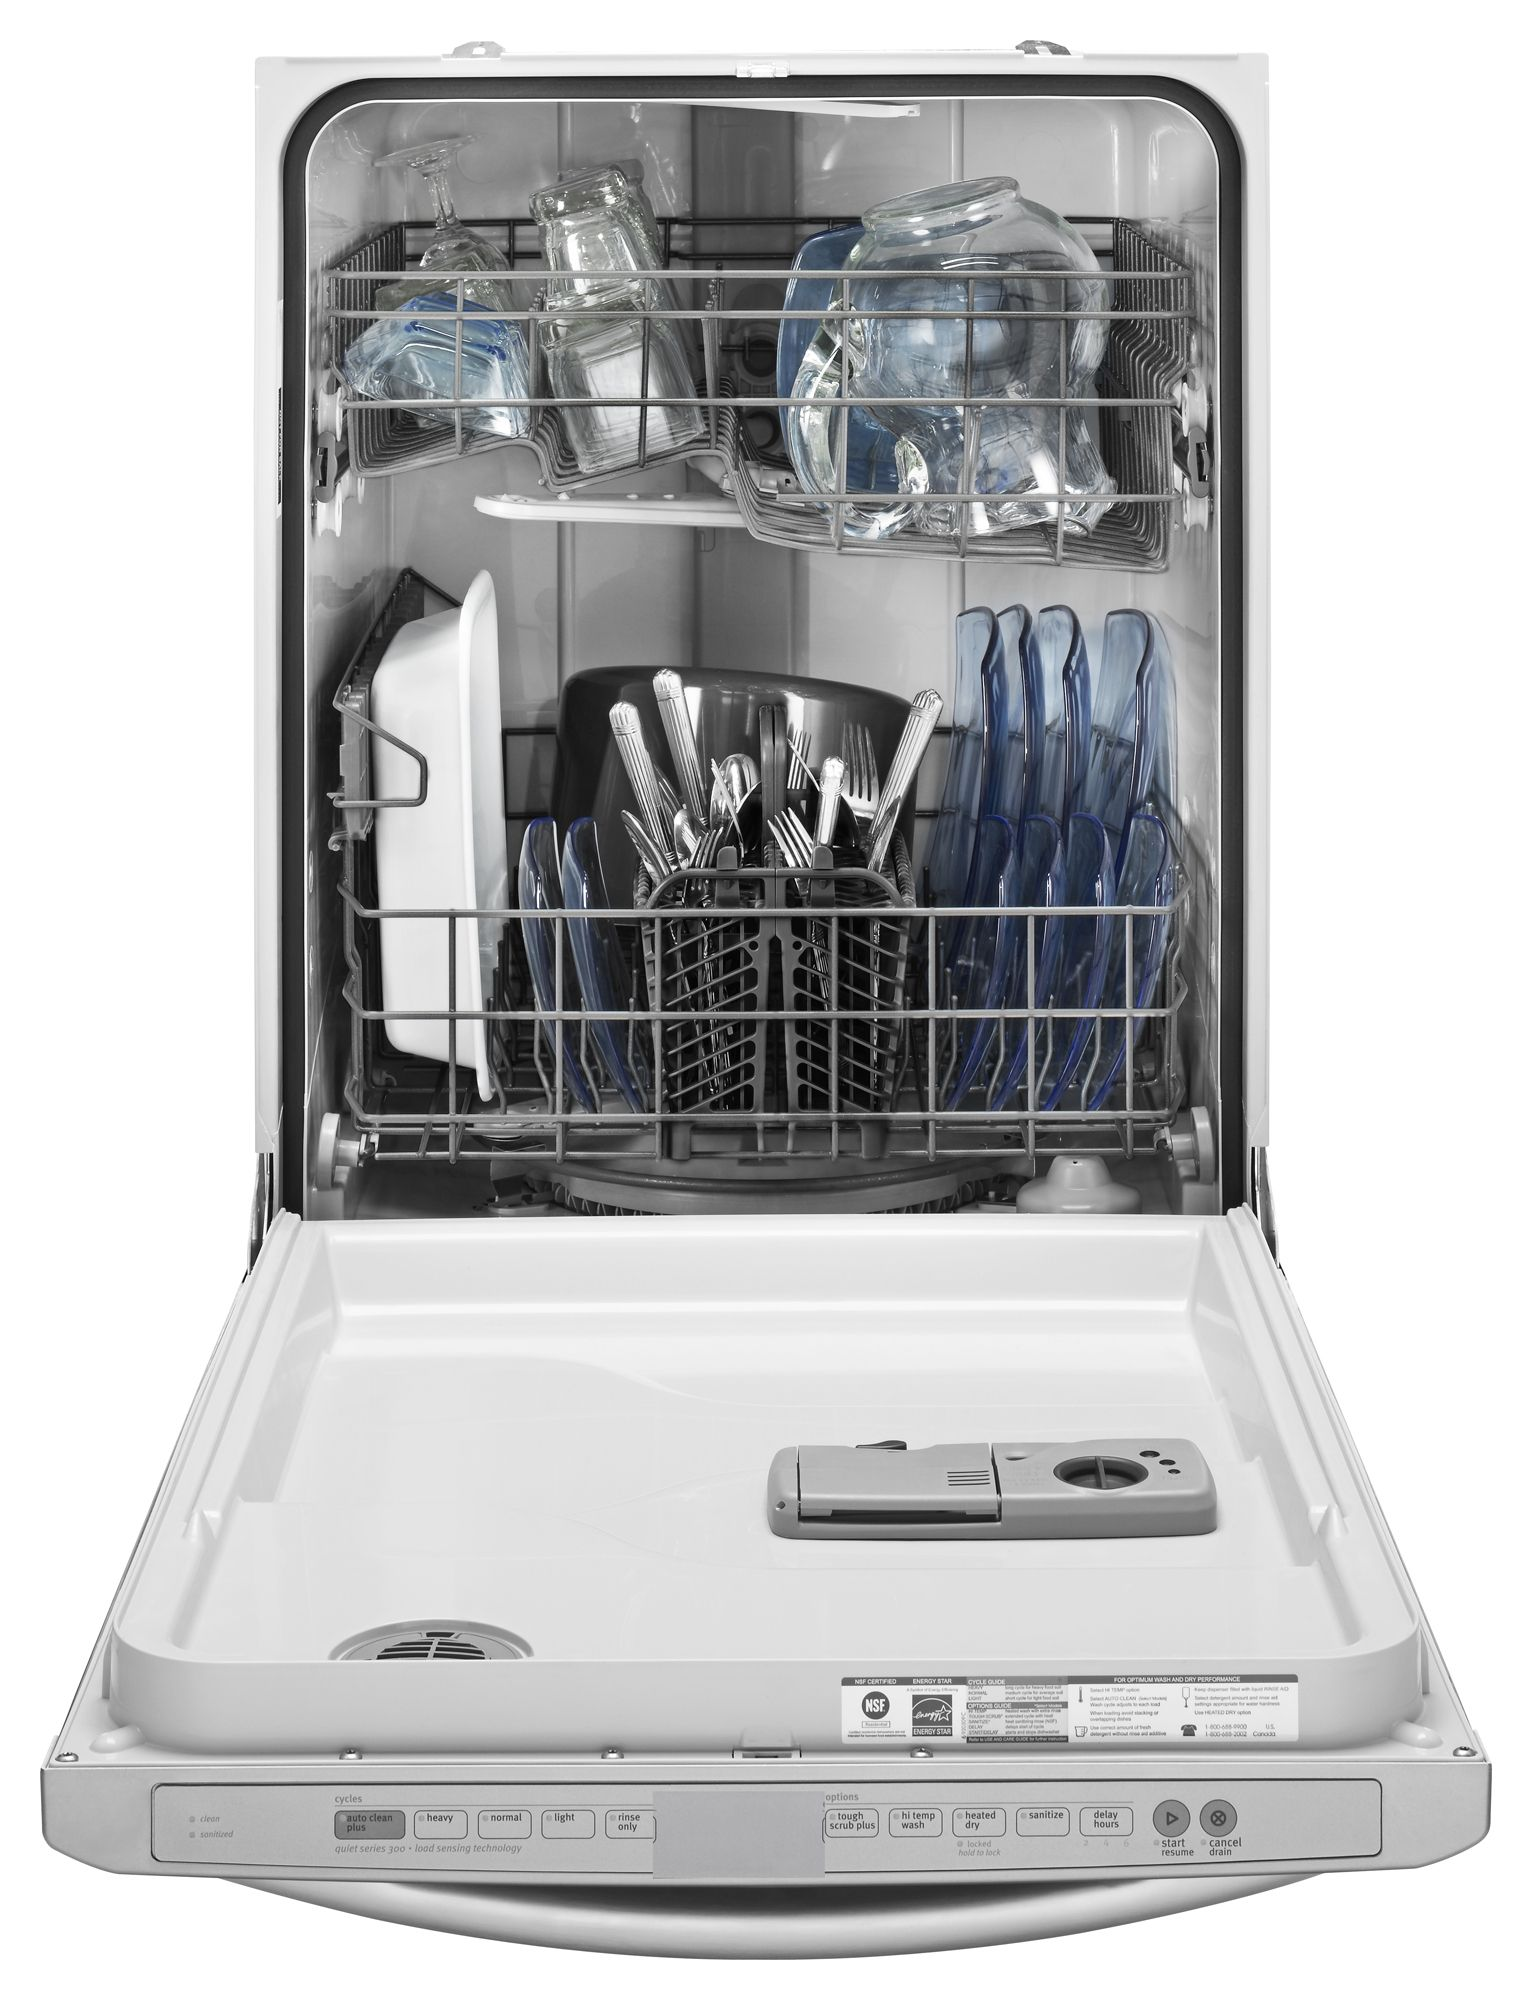 Maytag 24 in. Built-In Jetclean® II Dishwasher w/ ToughScrub™ Plus